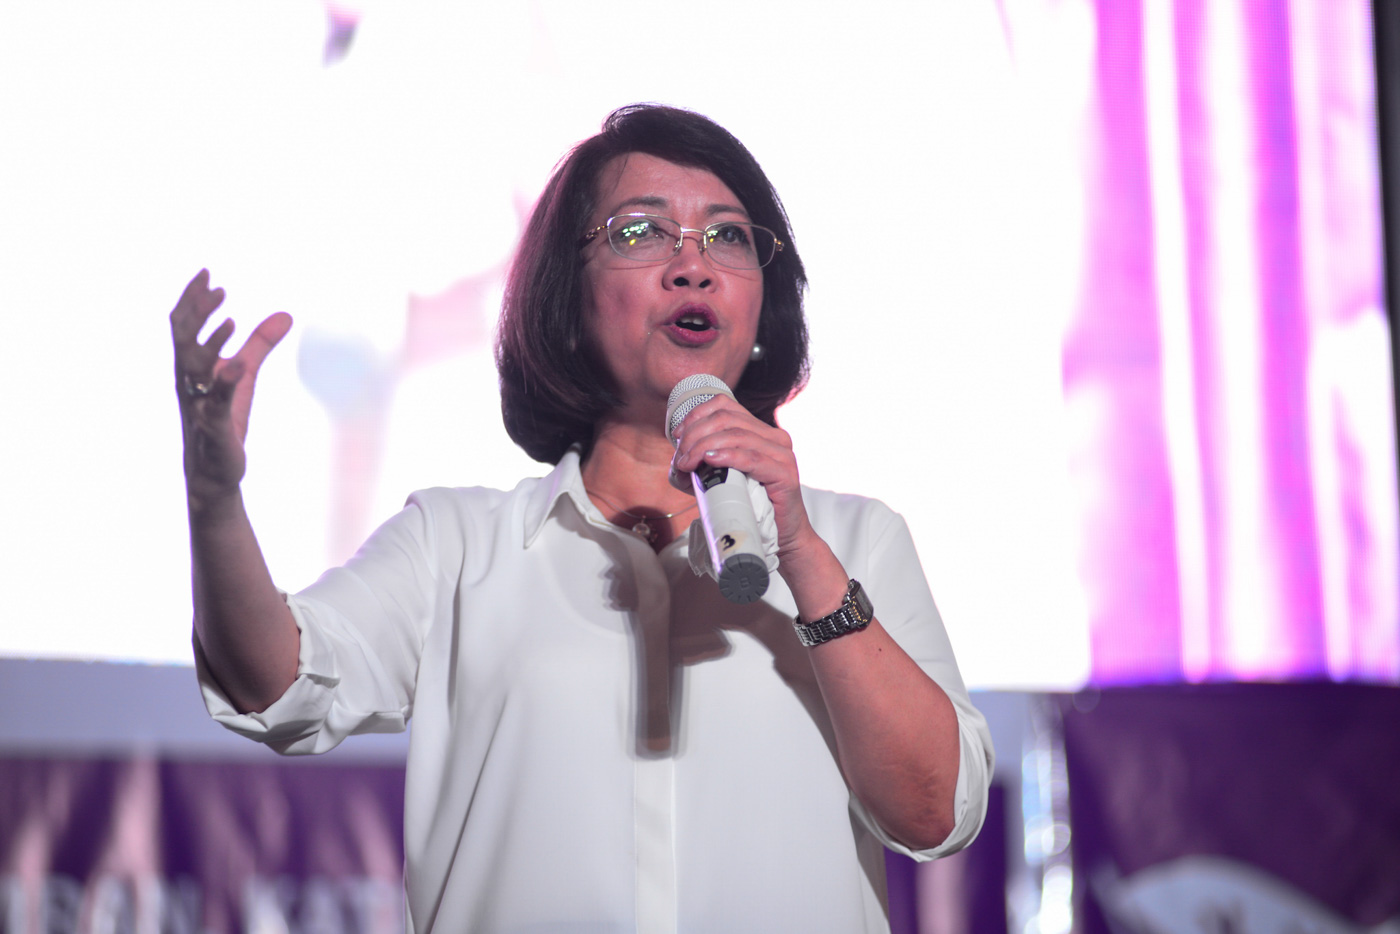 AFTER OUSTER. Former chief justice Maria Lourdes Sereno entertains more questions from the media after the Supreme Court finalized her ousted on June 19, 2018. Photo by Maria Tan/Rappler